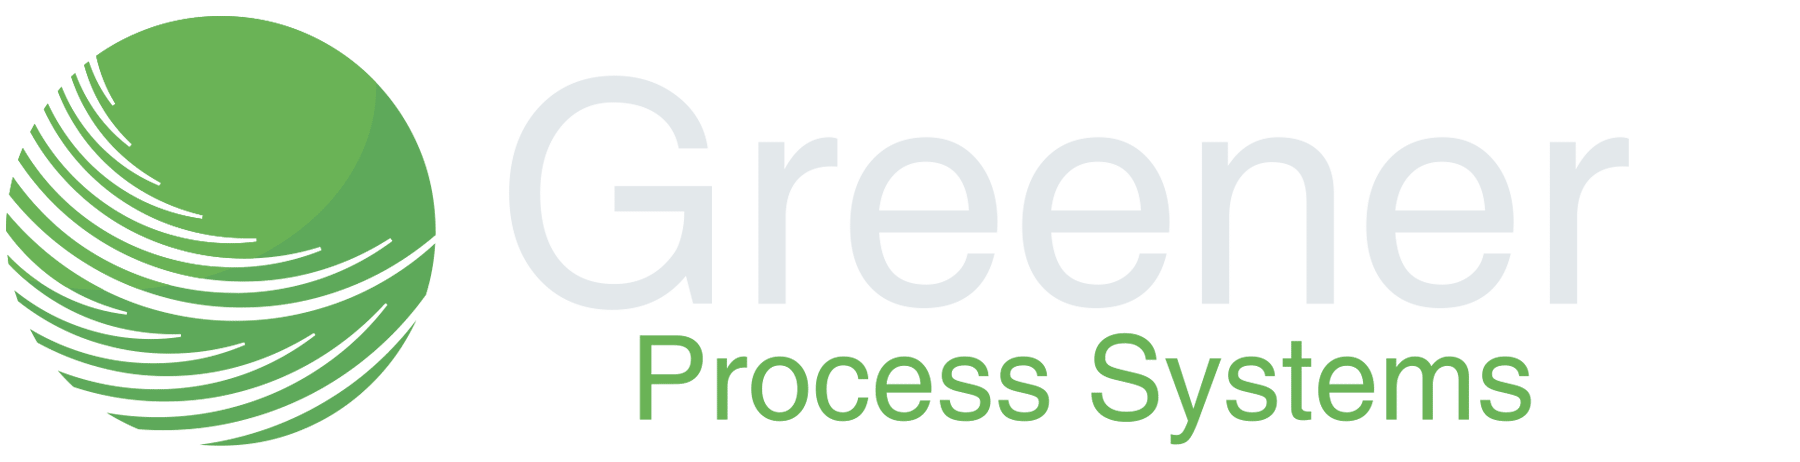 Greener Process Systems